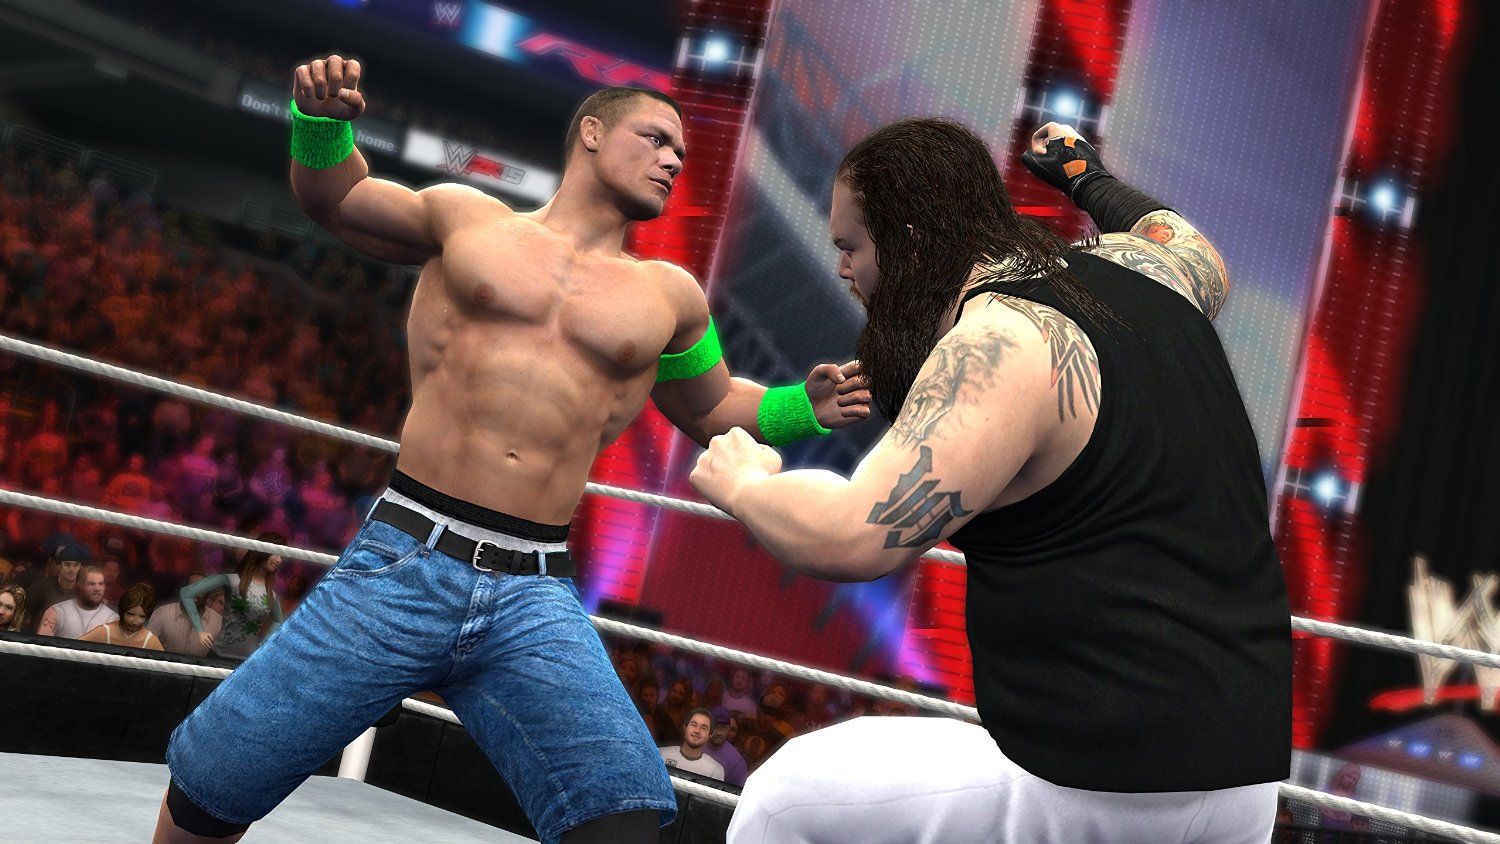 first wwe 2k15 ps3 screenshots released shows shawn